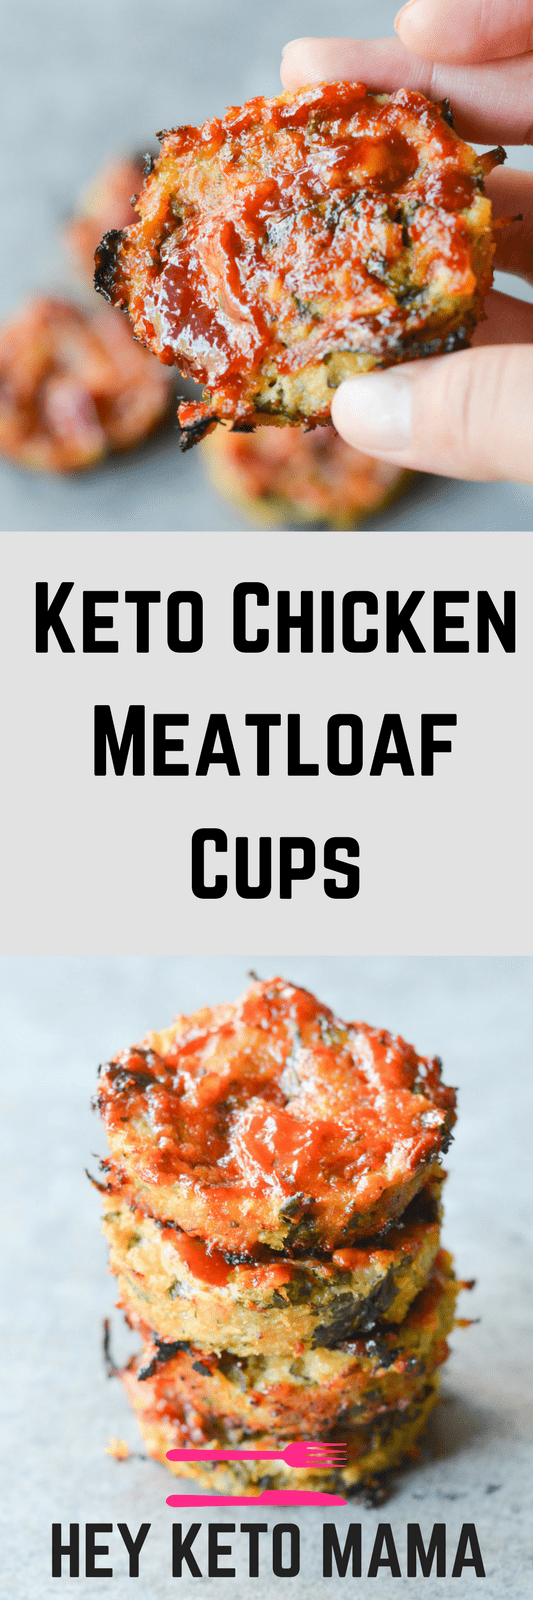 These Keto Chicken Meatloaf Cups are one of the easiest Low Carb Dinners I've ever made! Want to add some extra flavor? Wrap them in bacon! | heyketomama.com